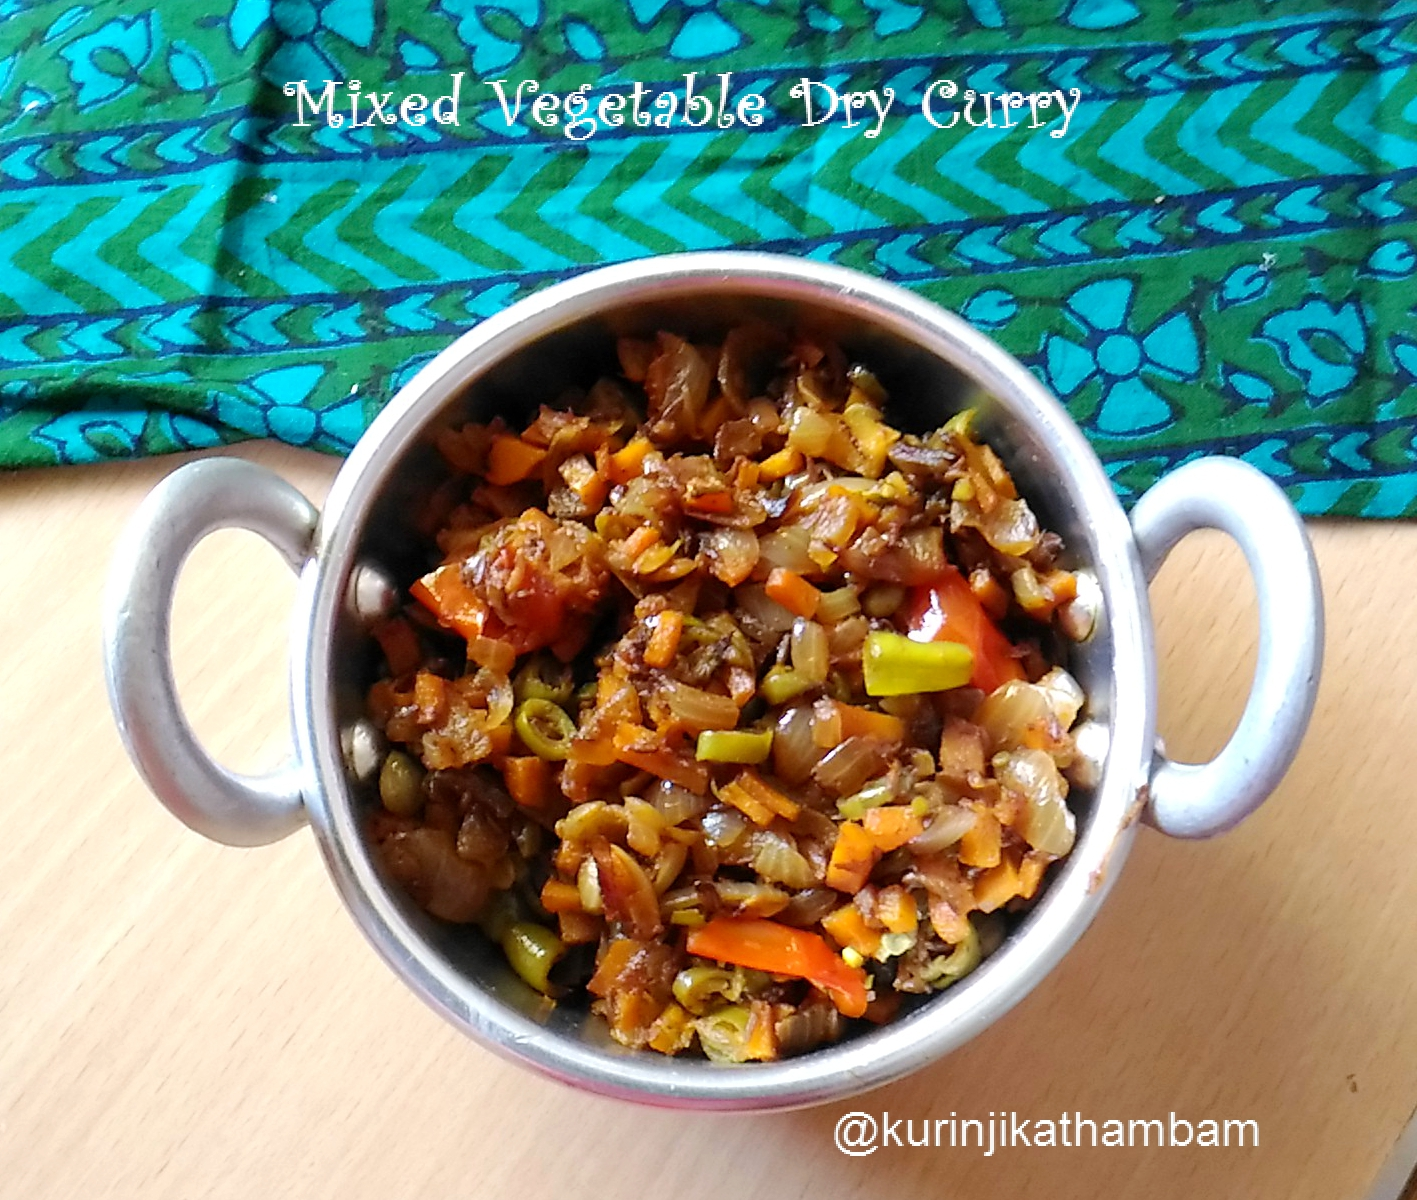 Mixed vegetable dry curry kurinji kathambam dry curries are very good for taking dishes while travelling mixed vegetable dry curry is very good side dish for chapathi roti and poori forumfinder Images